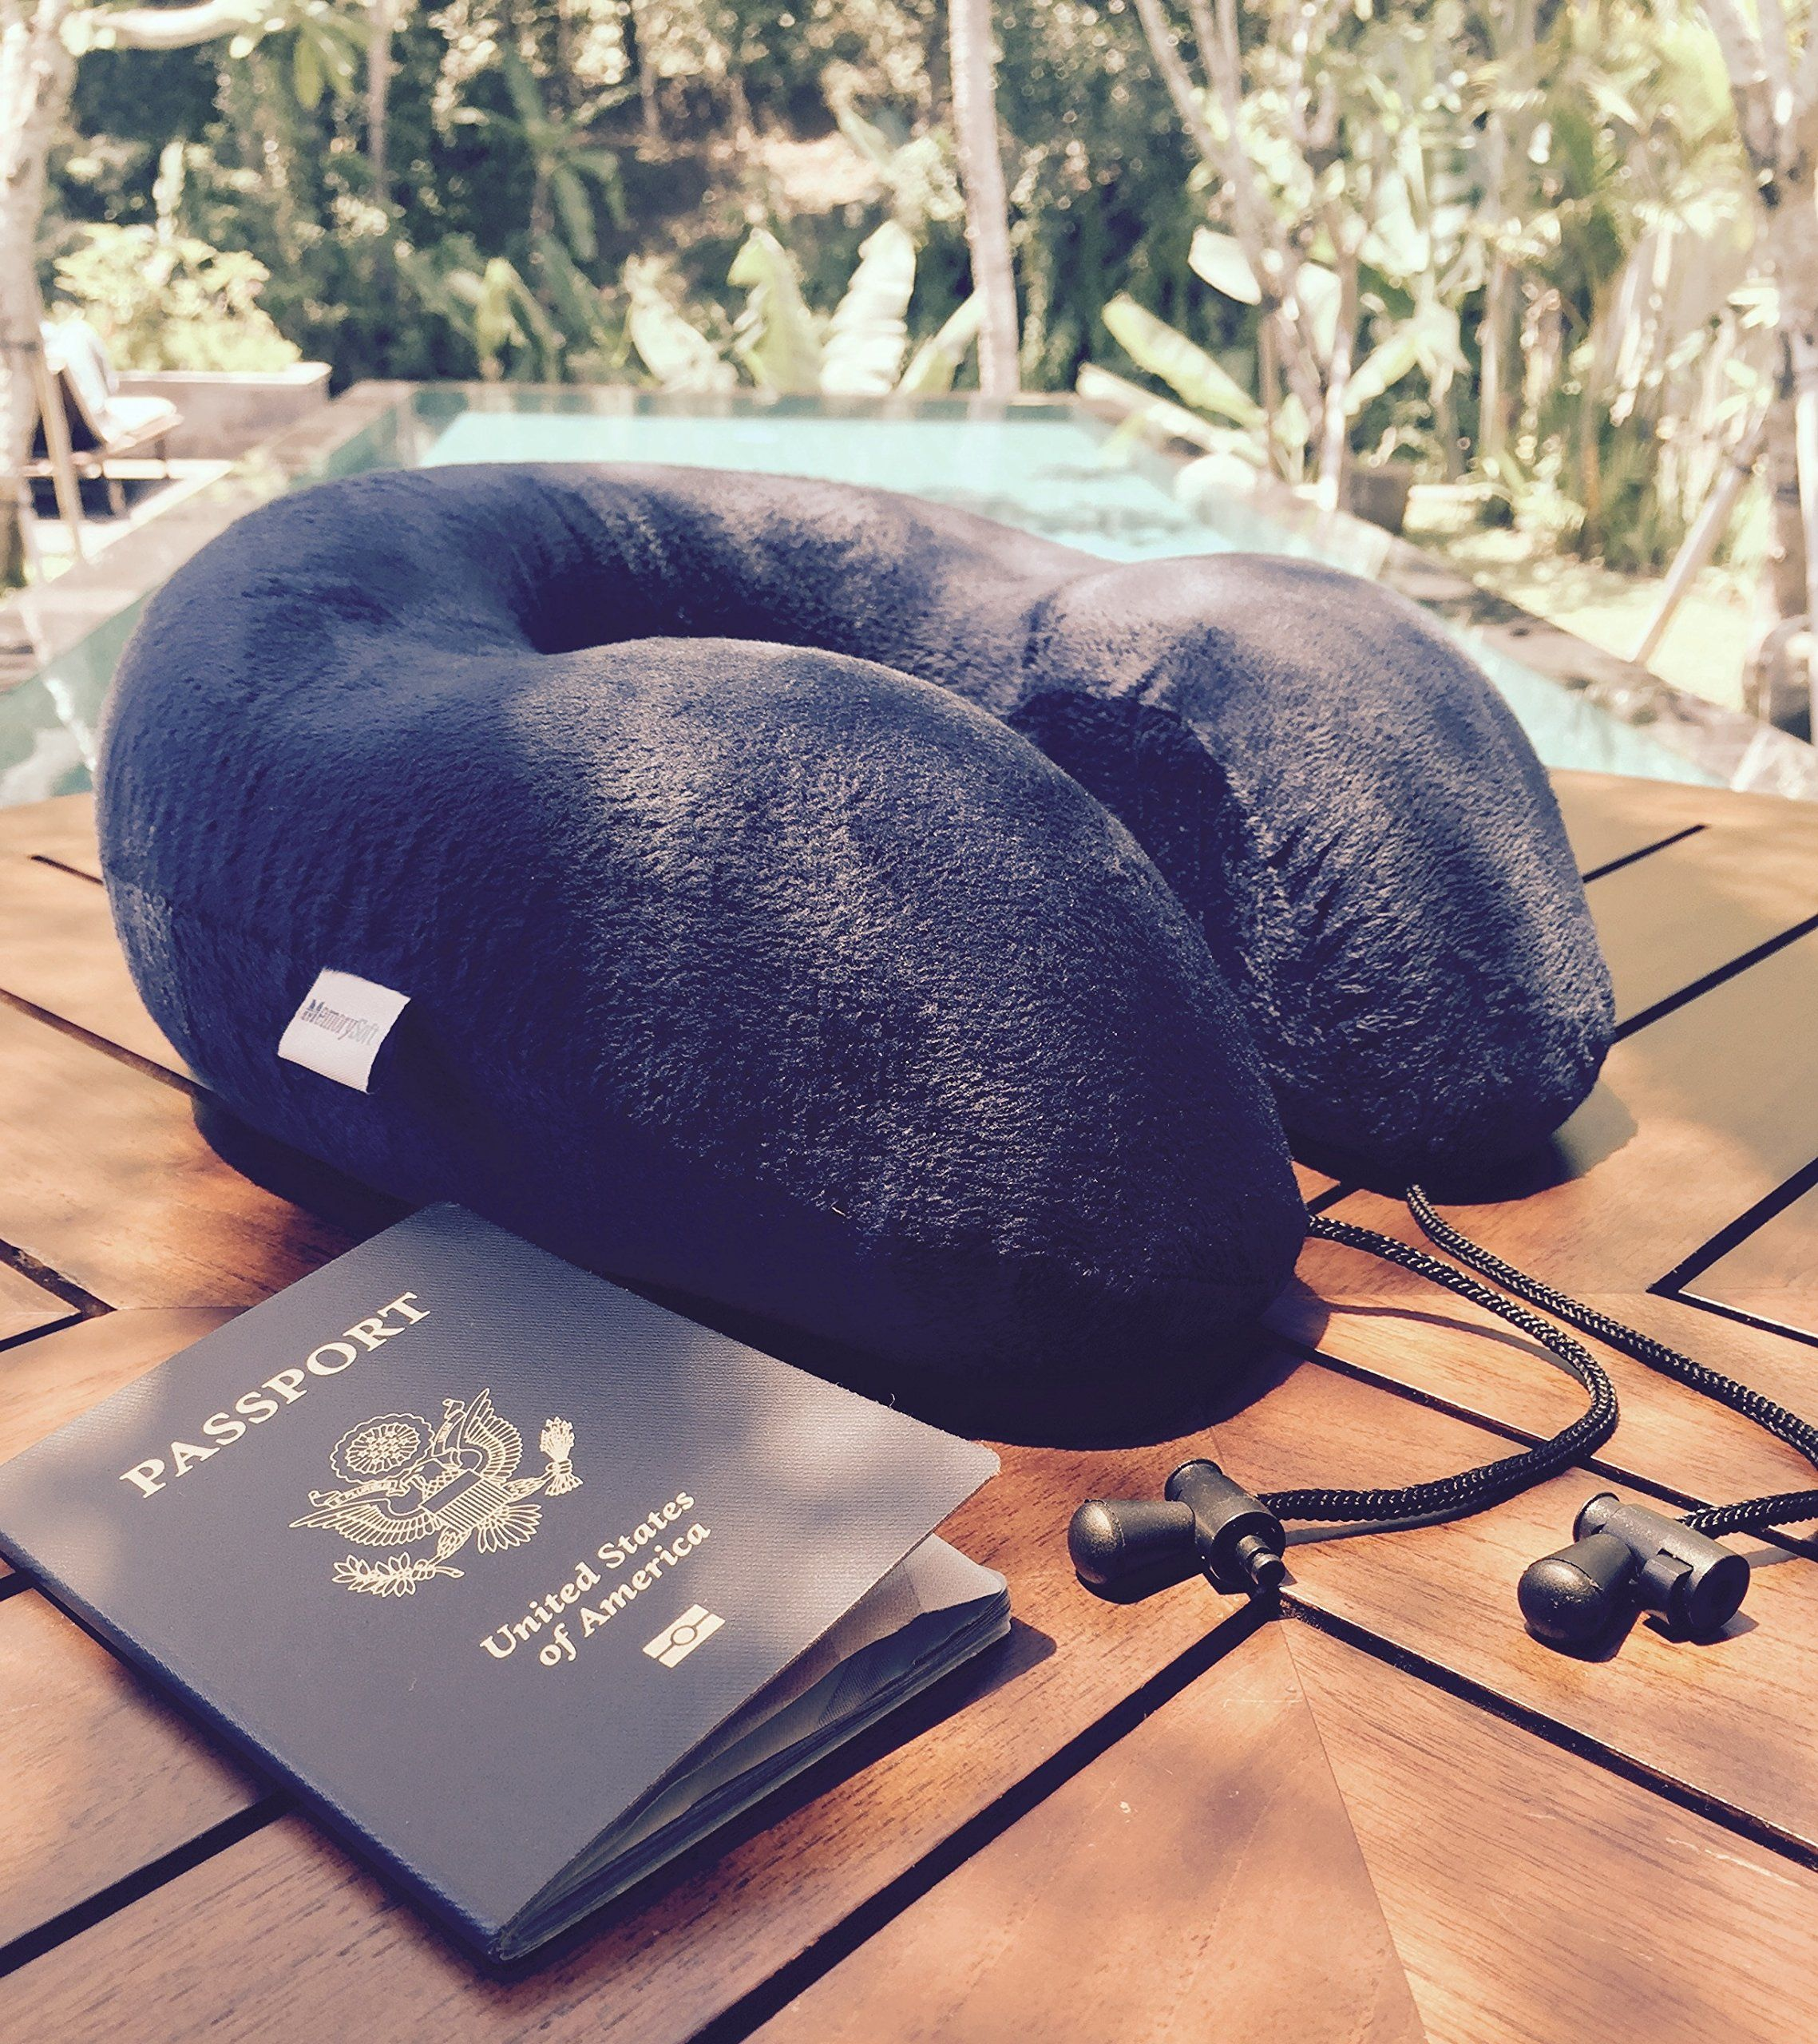 MemorySoft Luxury Travel Neck Pillow by